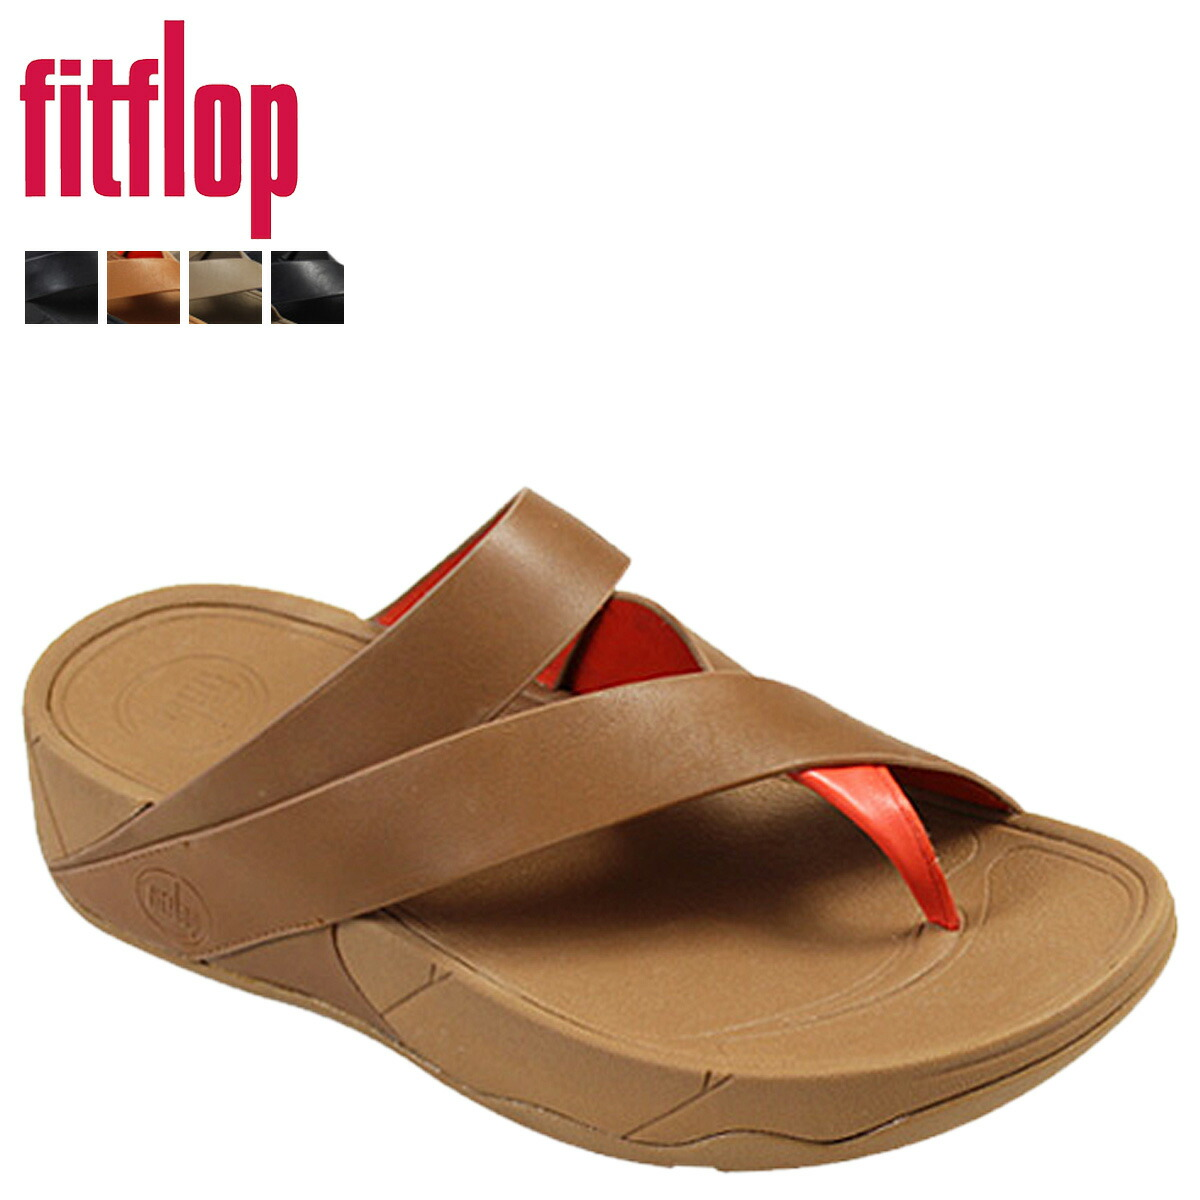 fitflop sling leather tannery